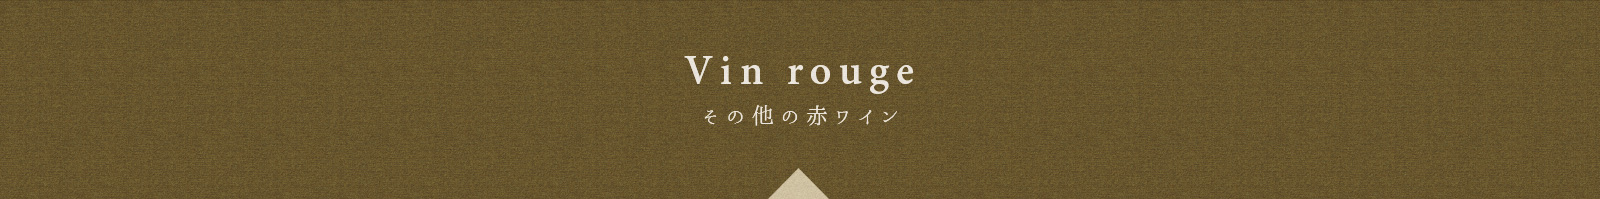 Vin rouge その他の赤ワイン